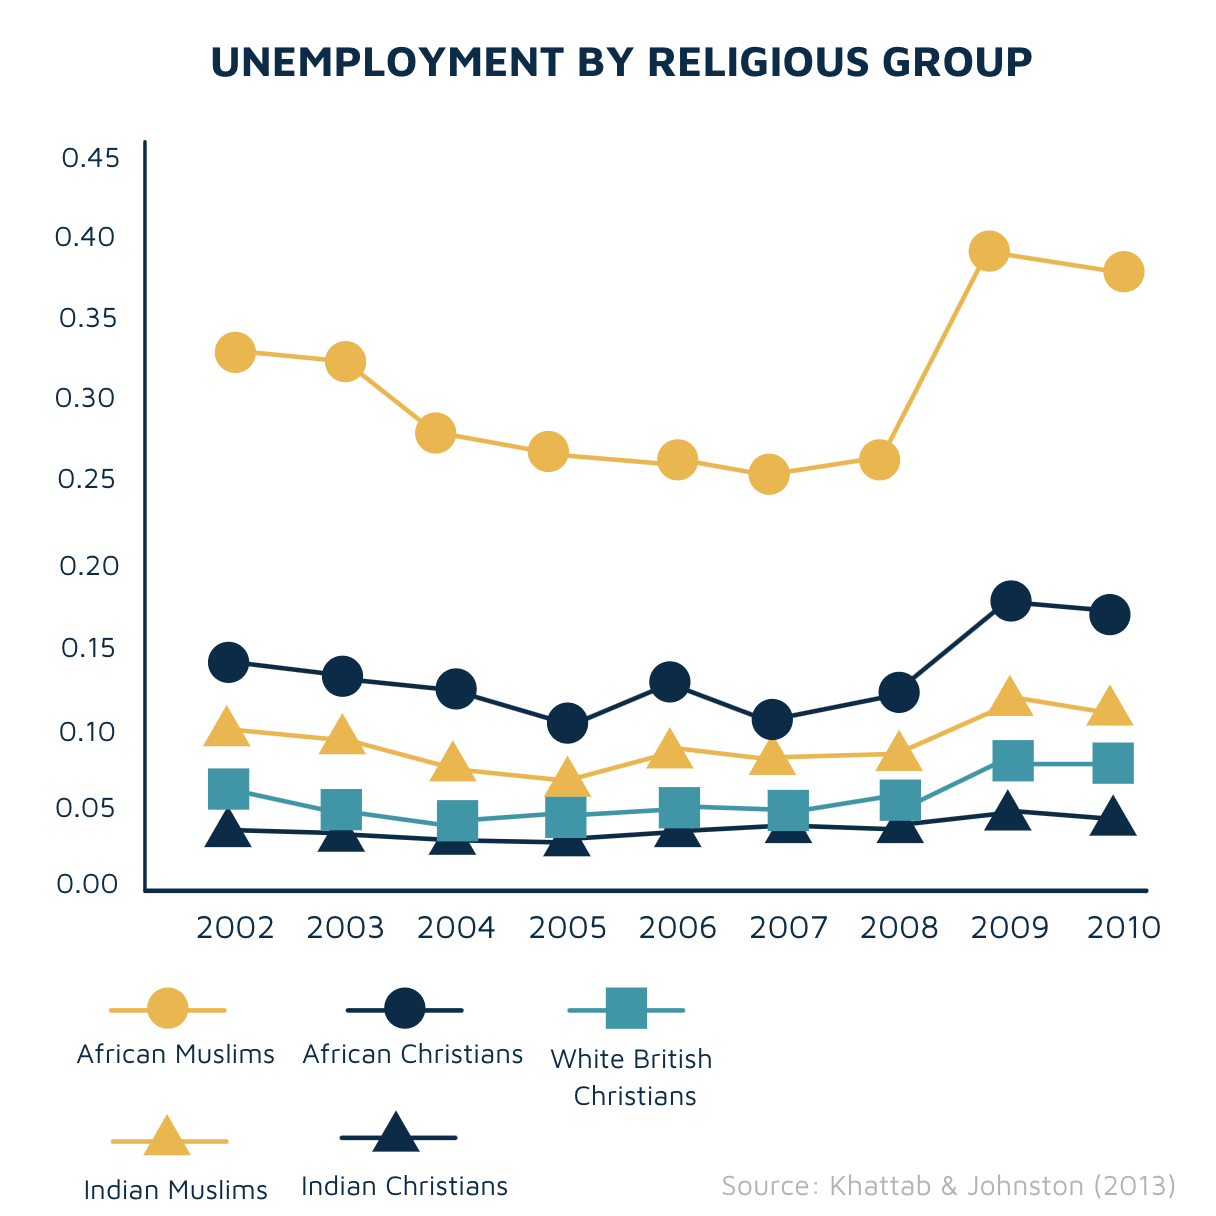 Unemployment by religious group